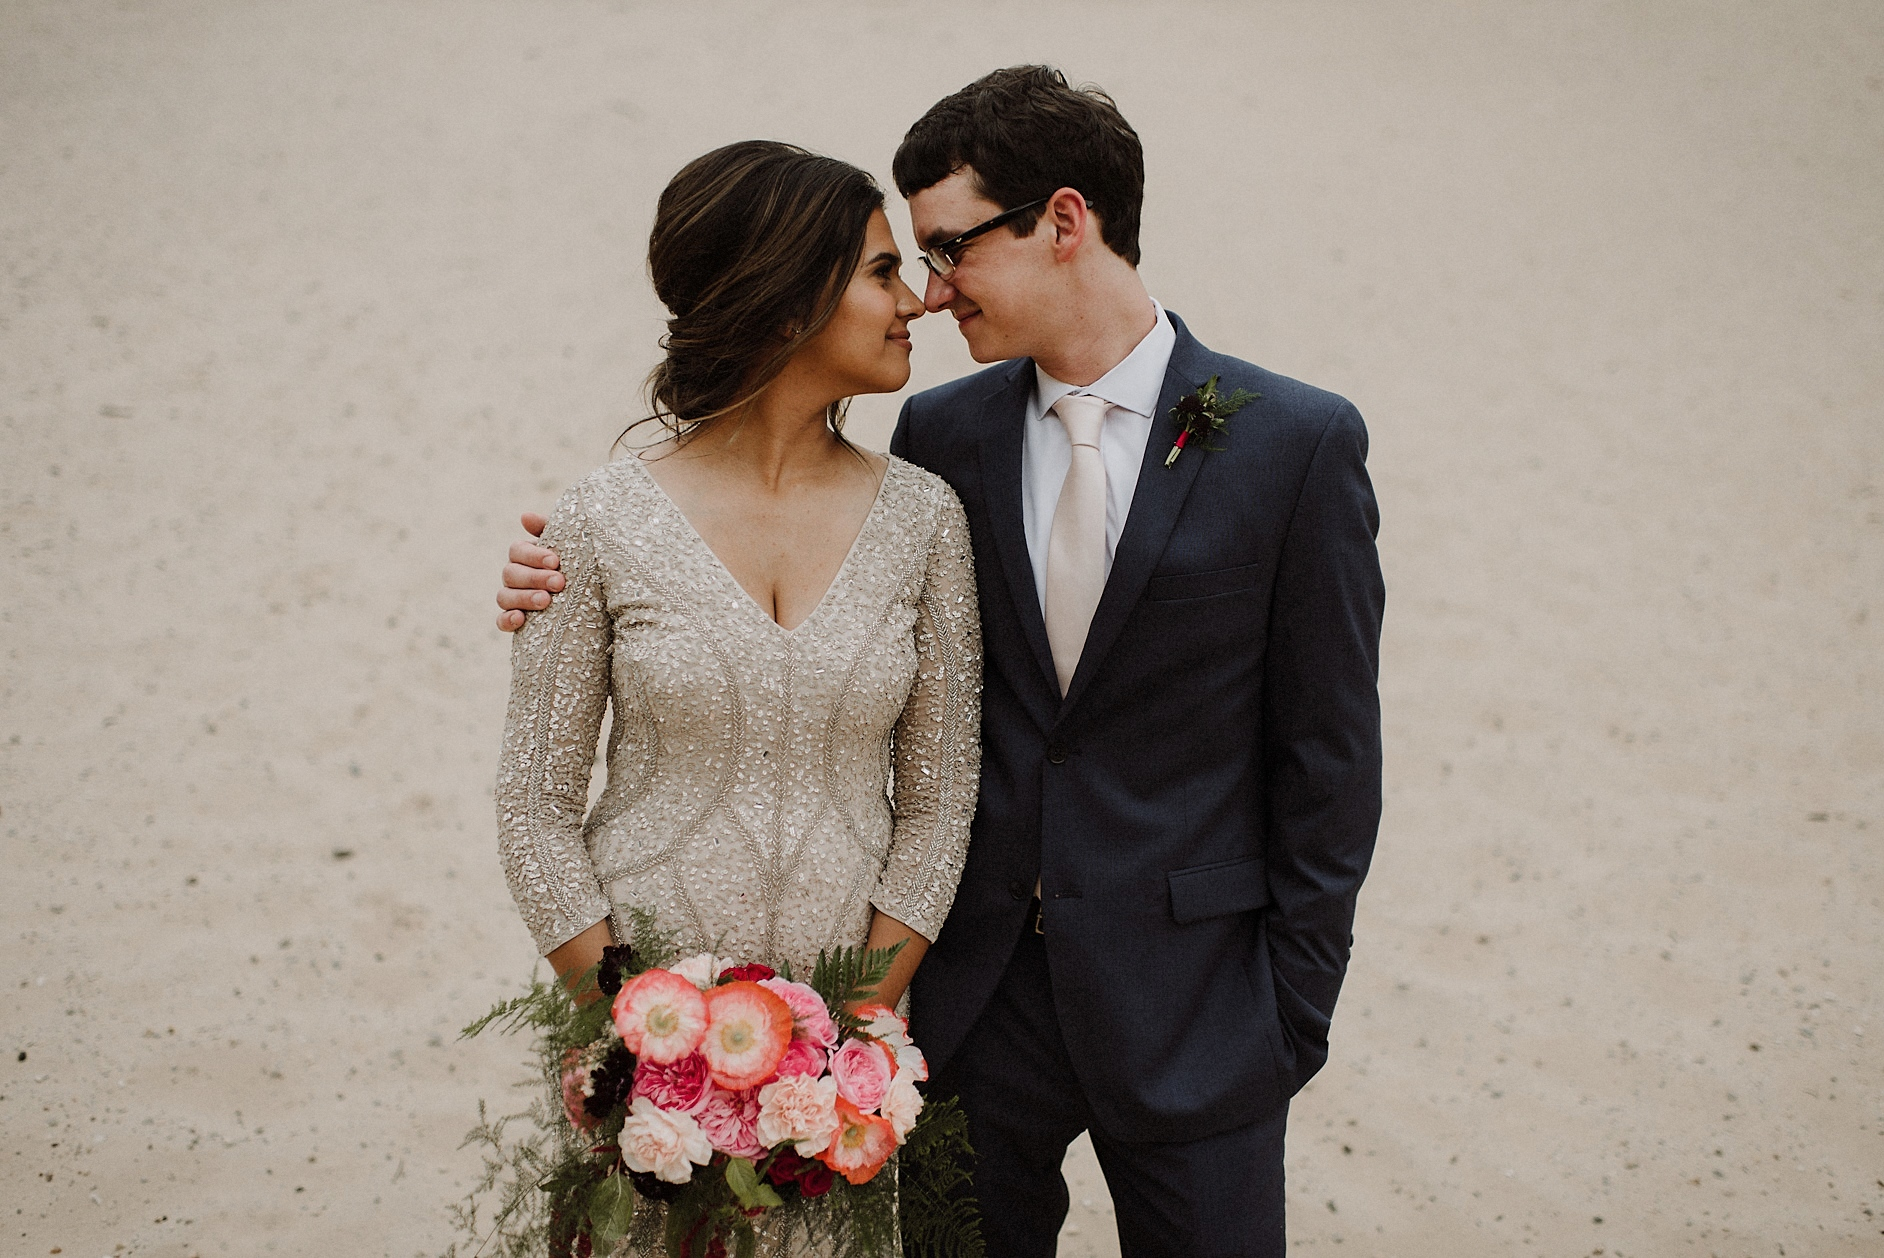 Elopement_Co_Michigan_Wedding-63